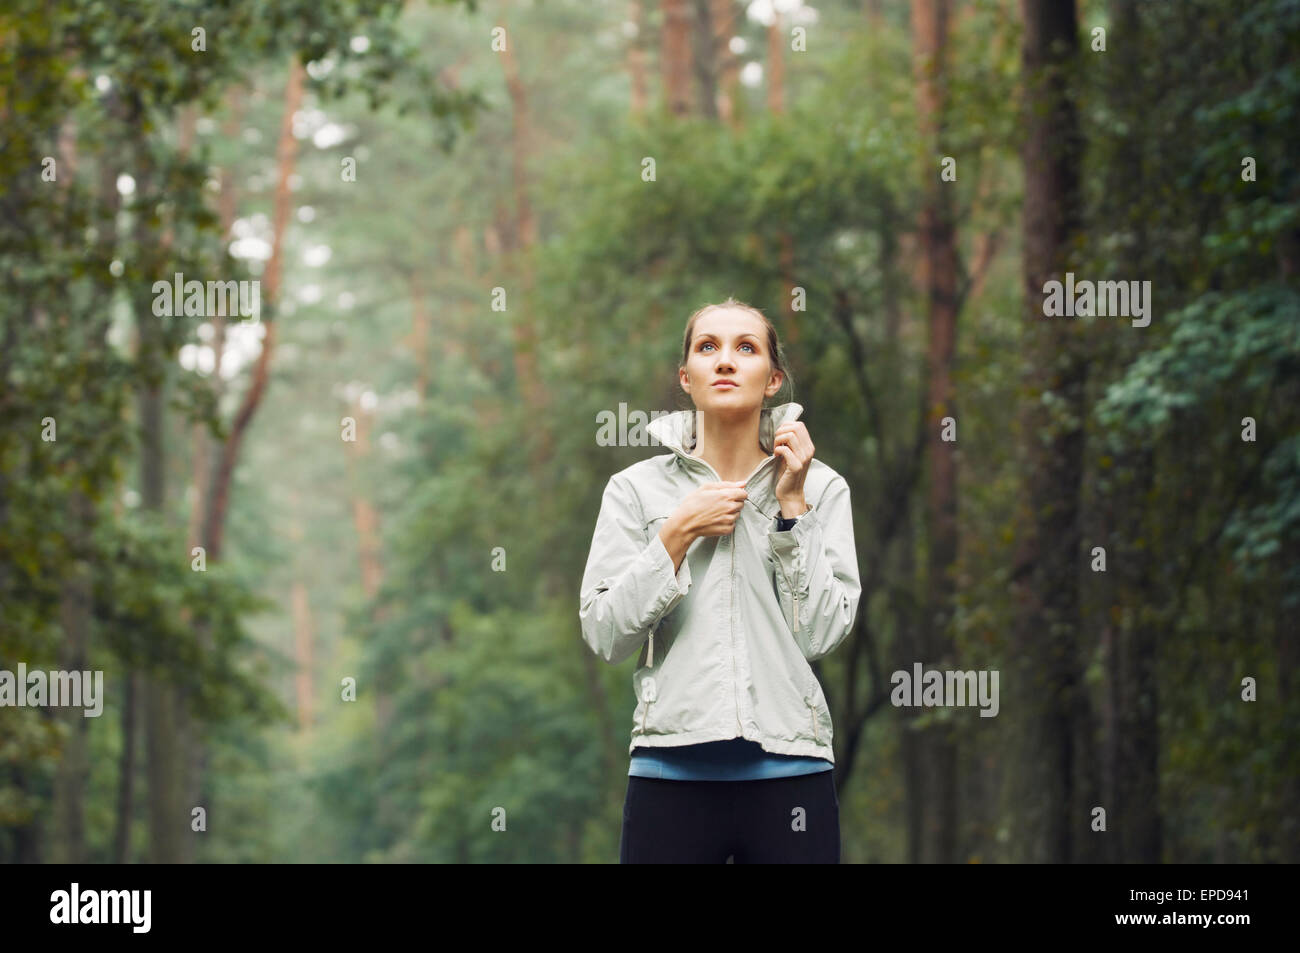 healthy lifestyle fitness sporty woman running early in the morning in forest area, fitness healthy lifestyle concept - Stock Image